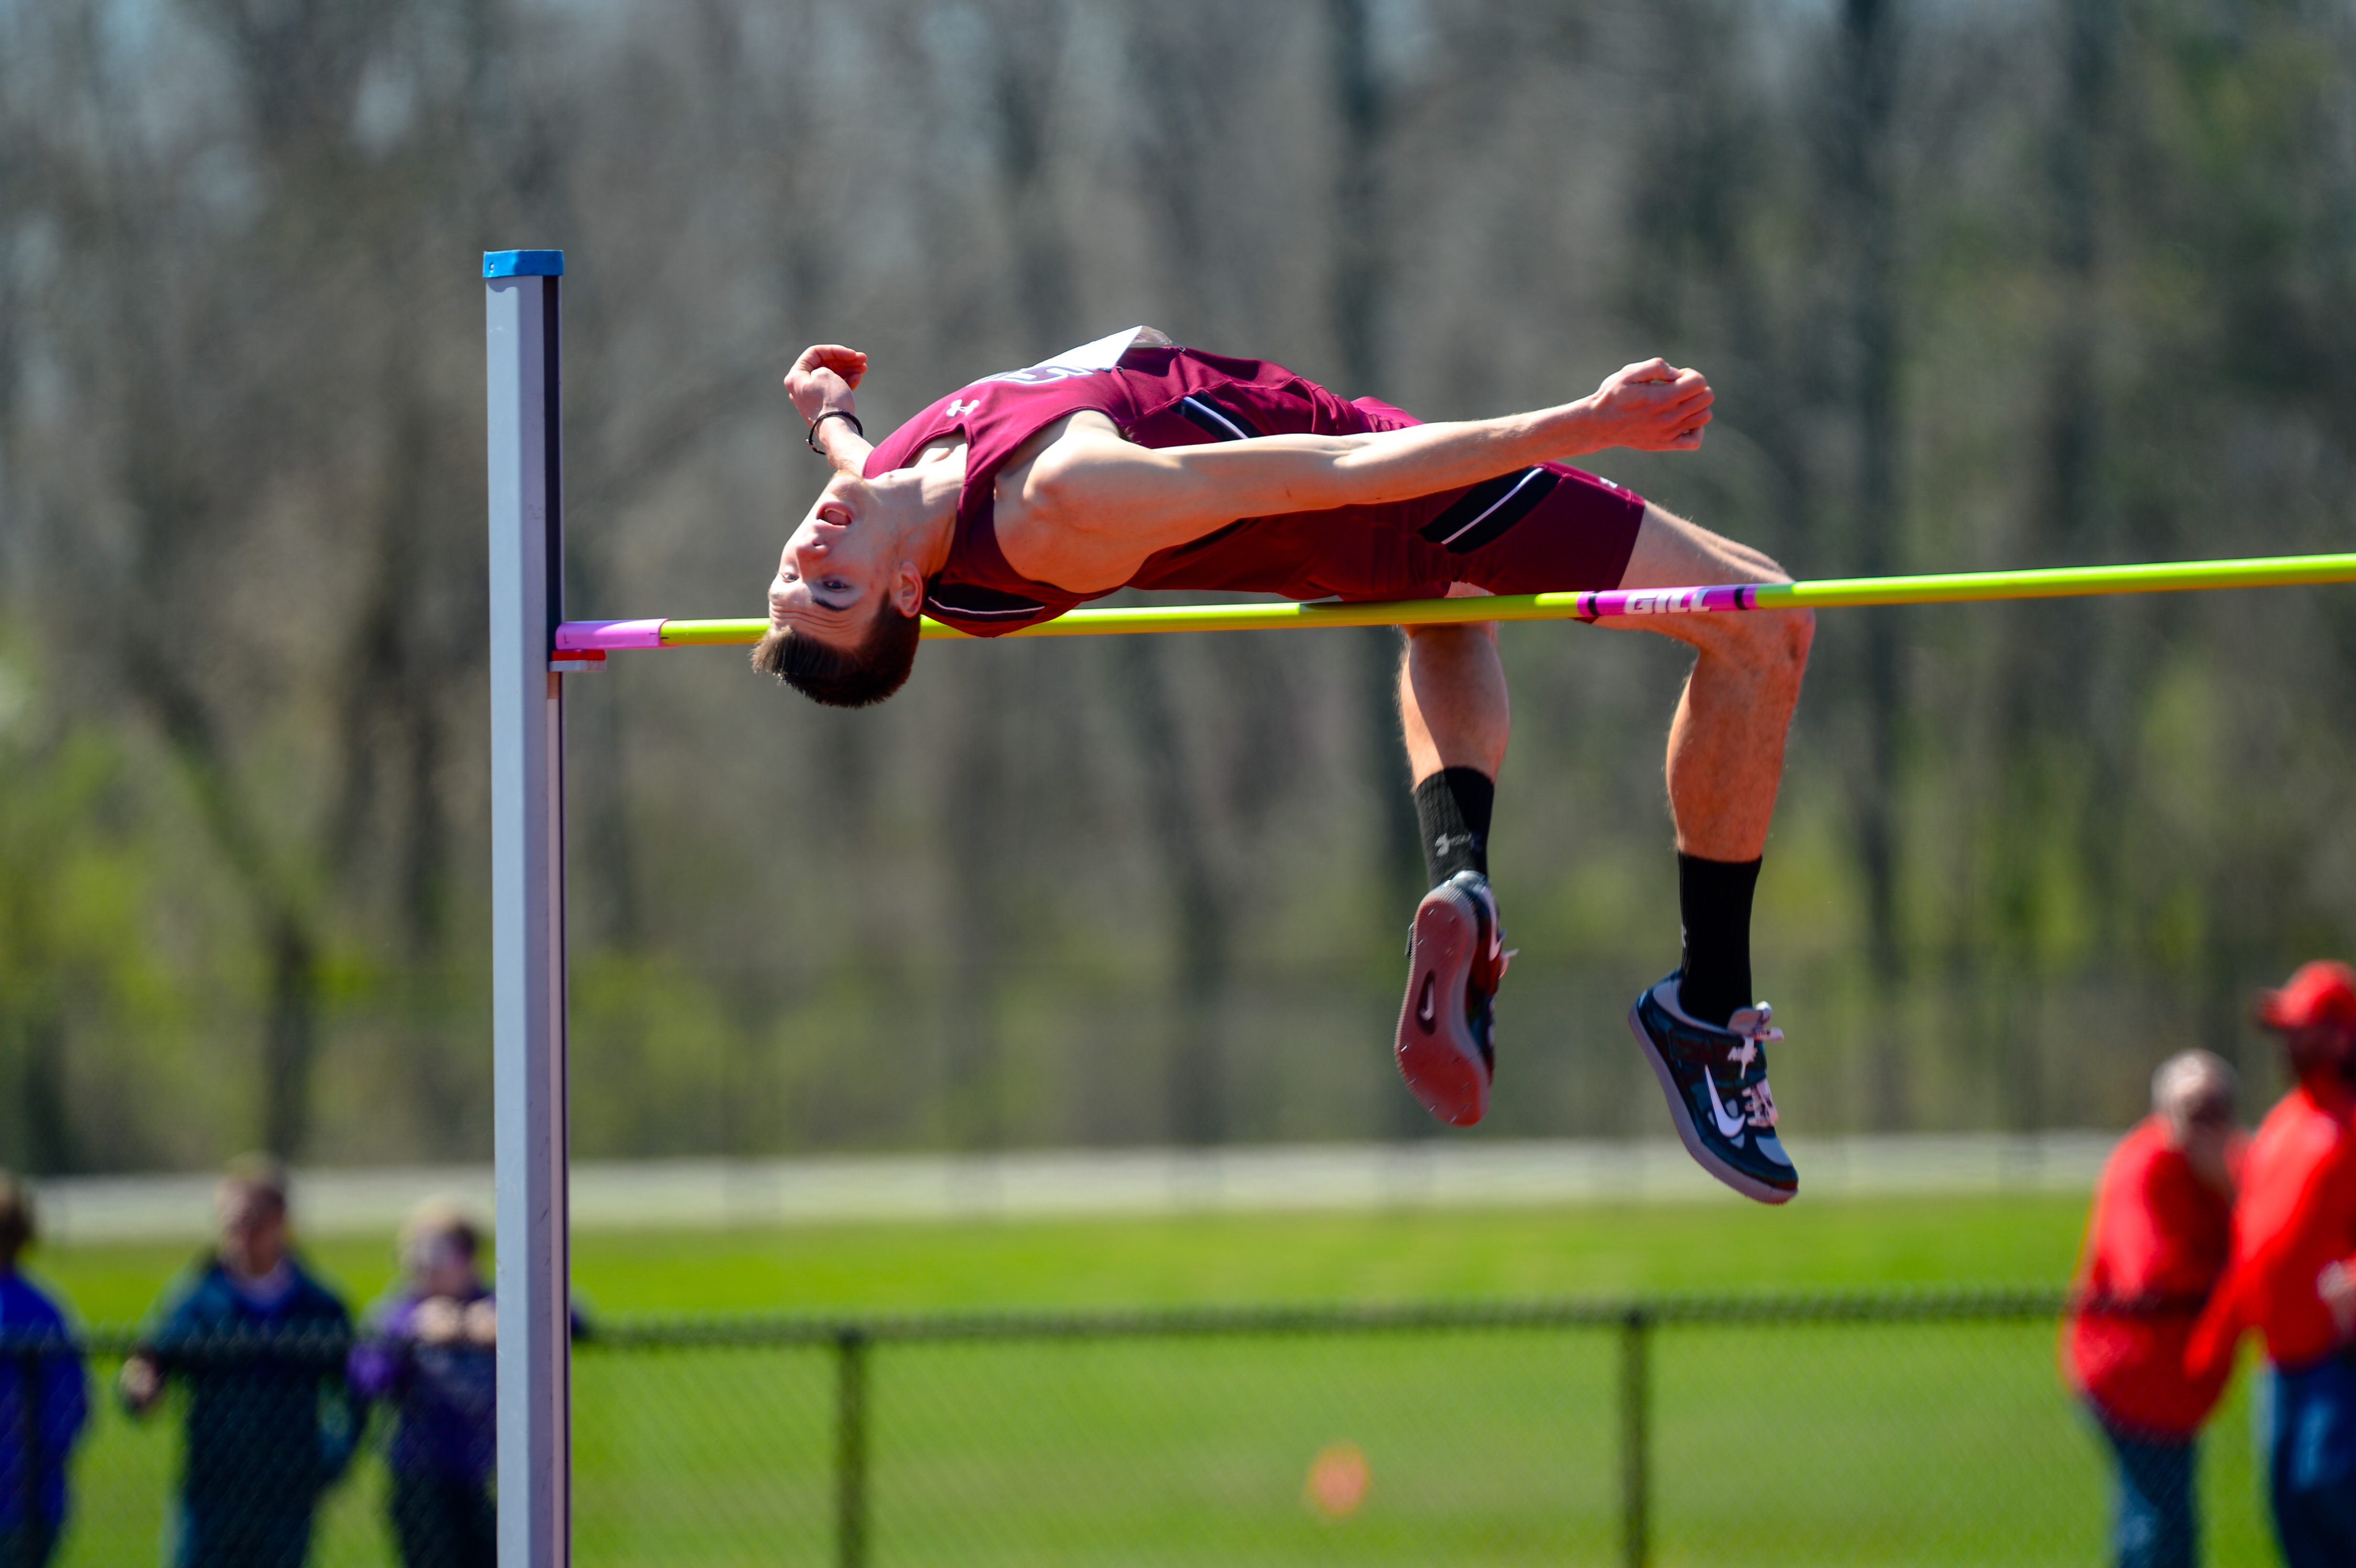 Southern Illinois' Kyle Landon competes in the high jump in this undated photo. Landon took the silver medal at the U.S. Olympic Trials on July 10 in Eugene, Oregon.